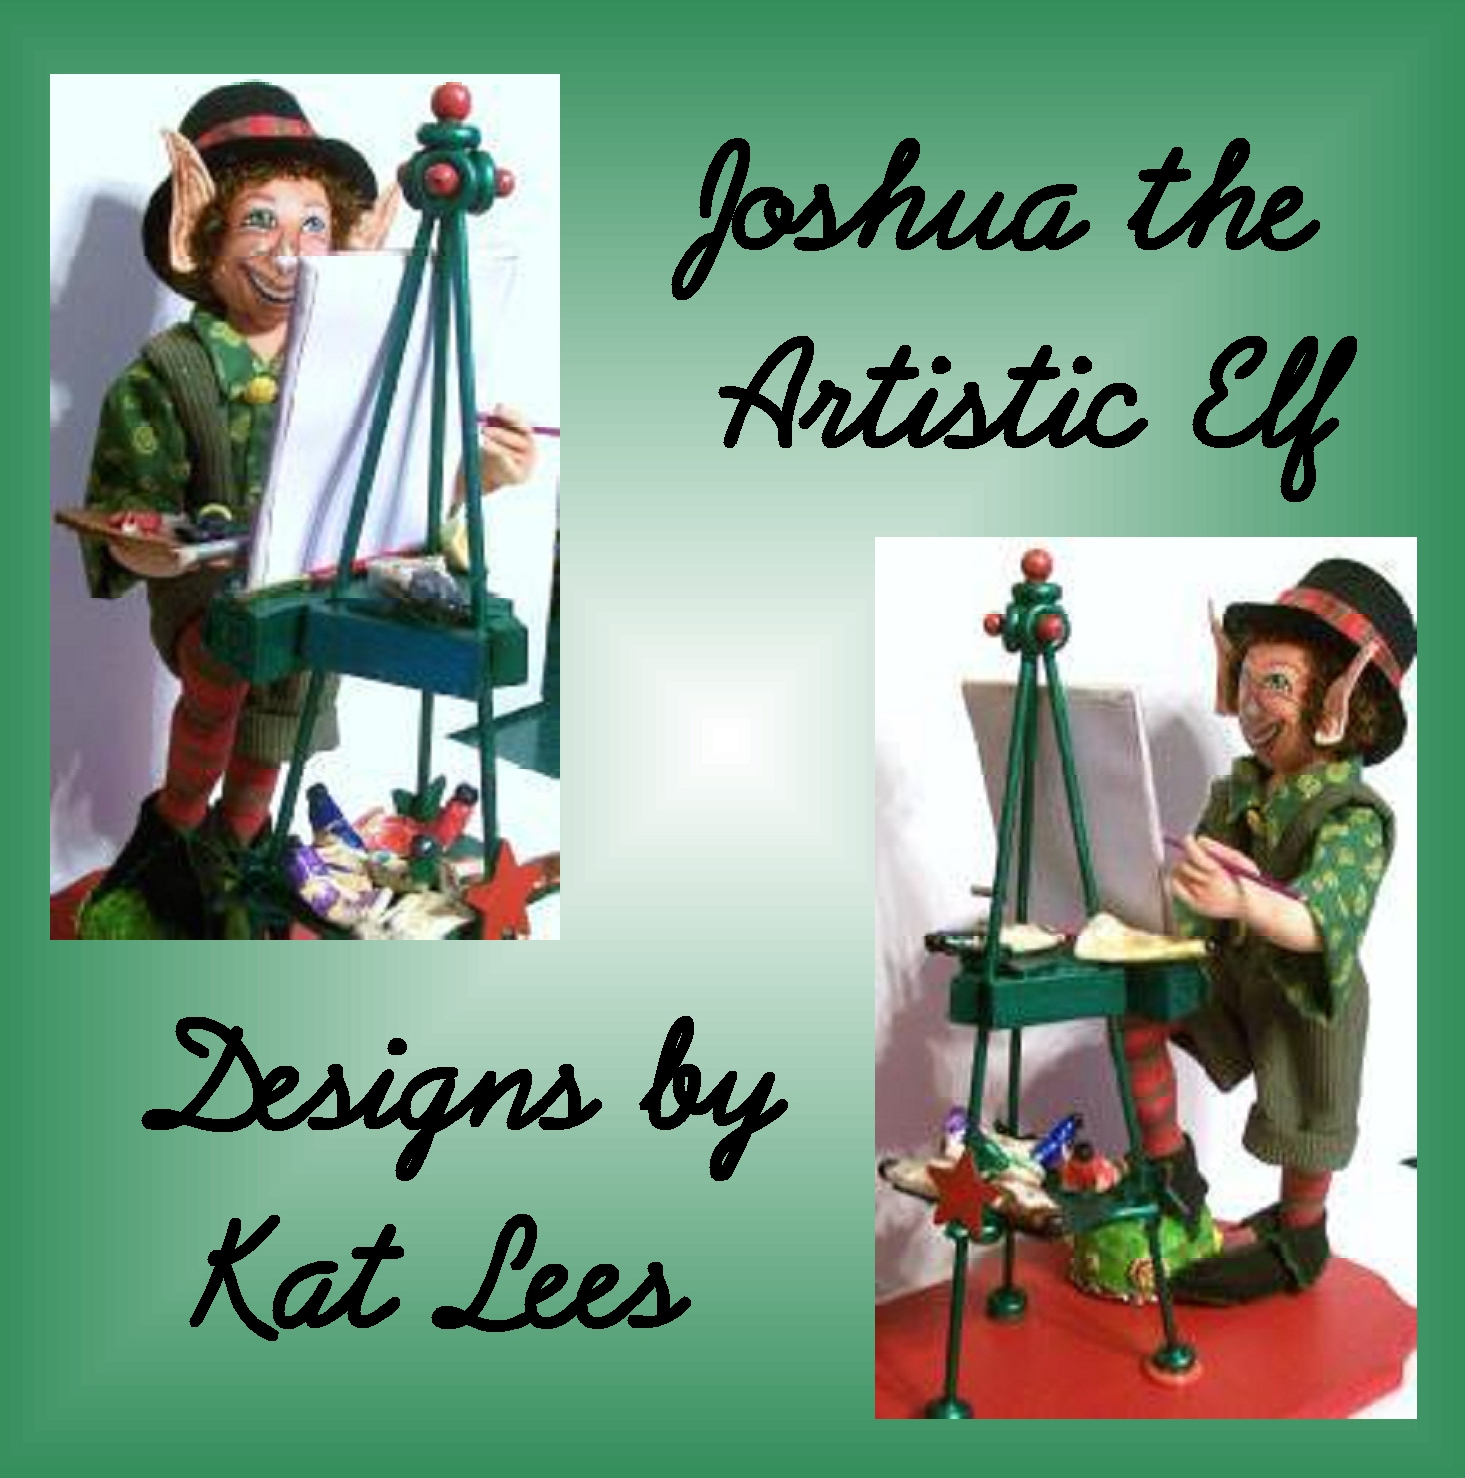 JOSHUA THE ARTISTC ELF